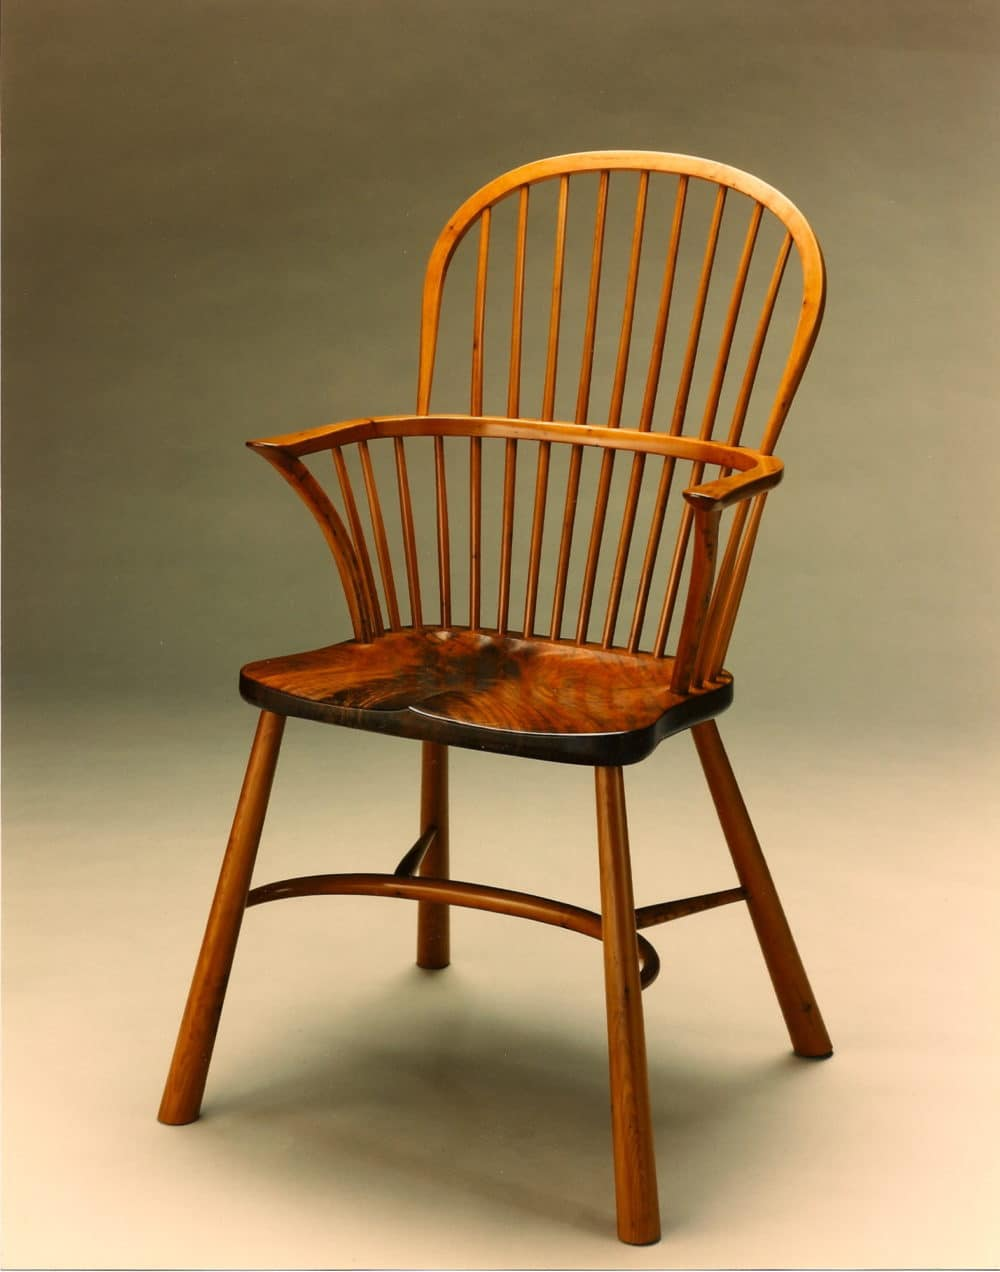 Gregory Hay DesignsEnglish Windsor Chair in Yew